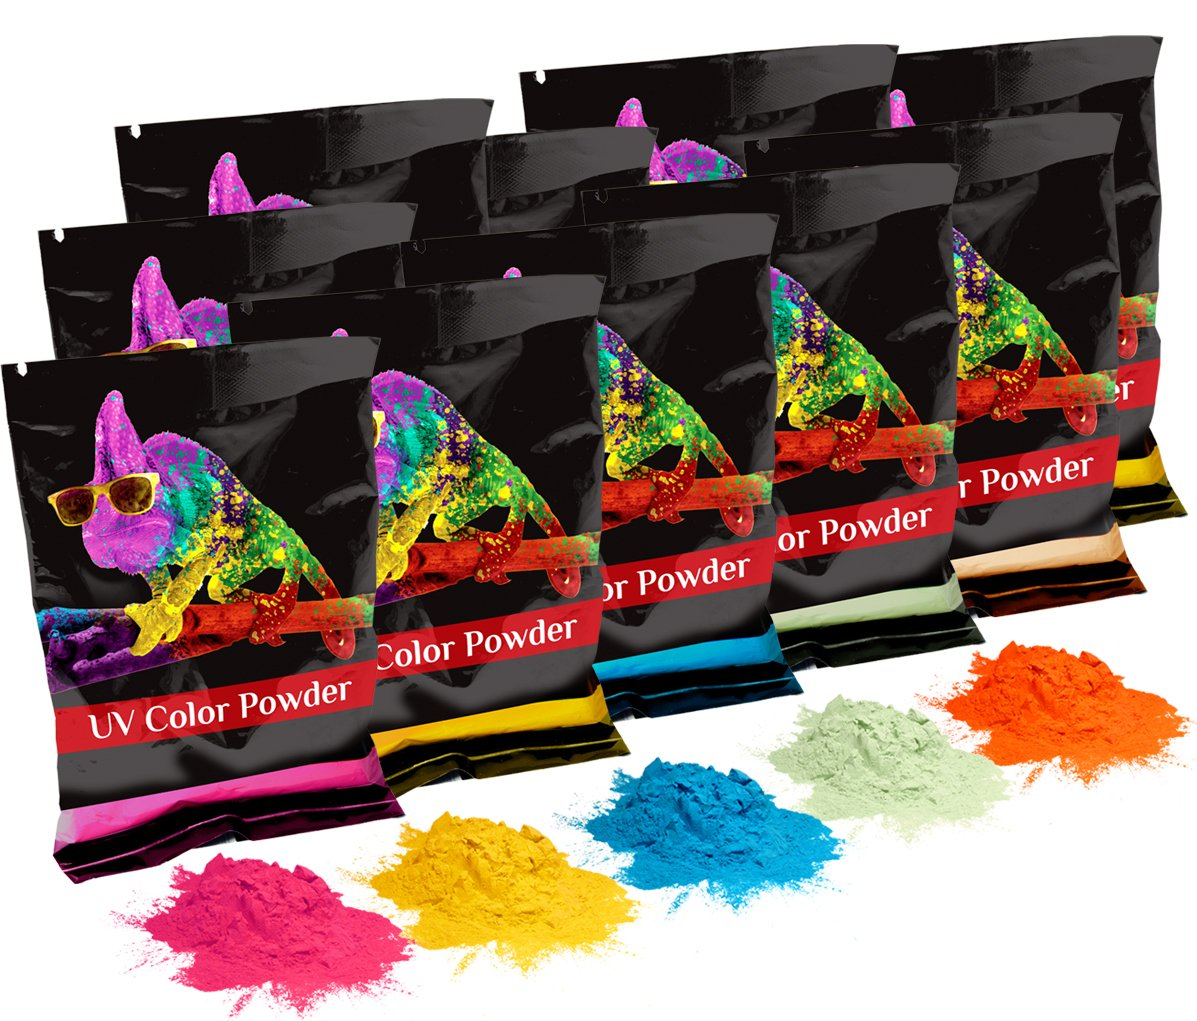 Holi UV Glow (Ultra Violet) Color Powder 12 Pack 70 Grams White,Yellow,Orange,Blue,Green,Pink